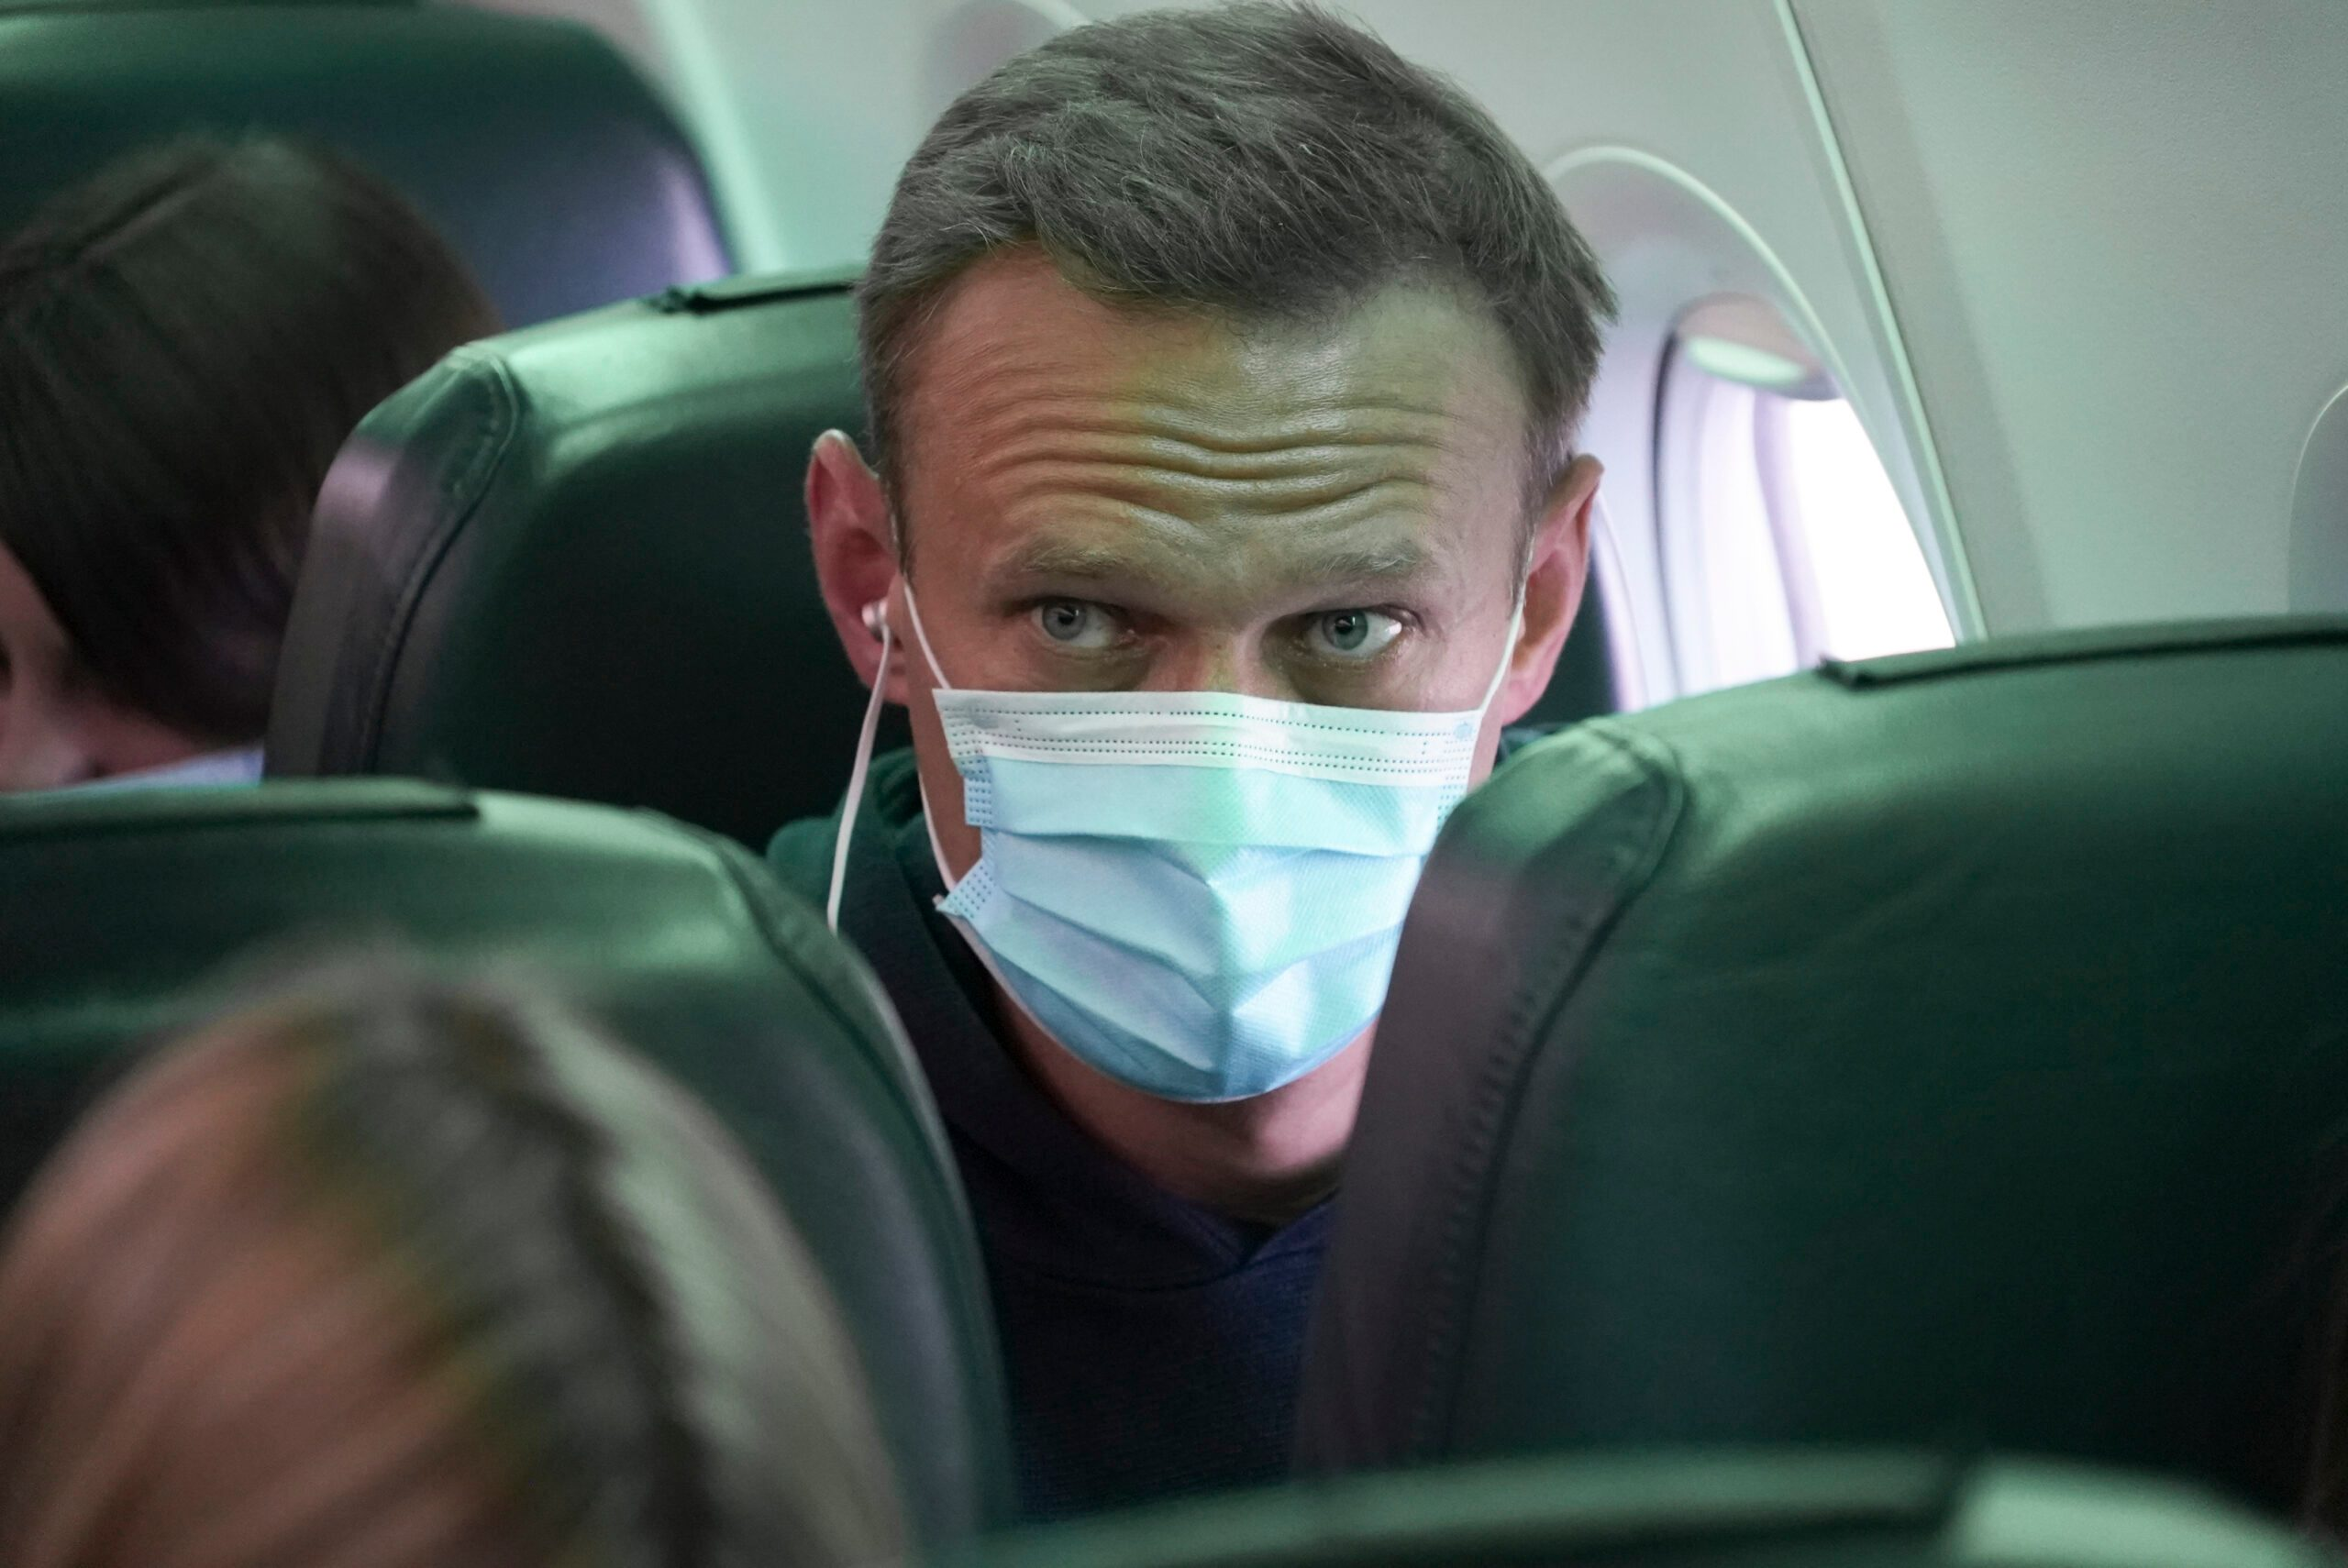 Kremlin Critic Navalny Detained After Landing in Moscow - snopes